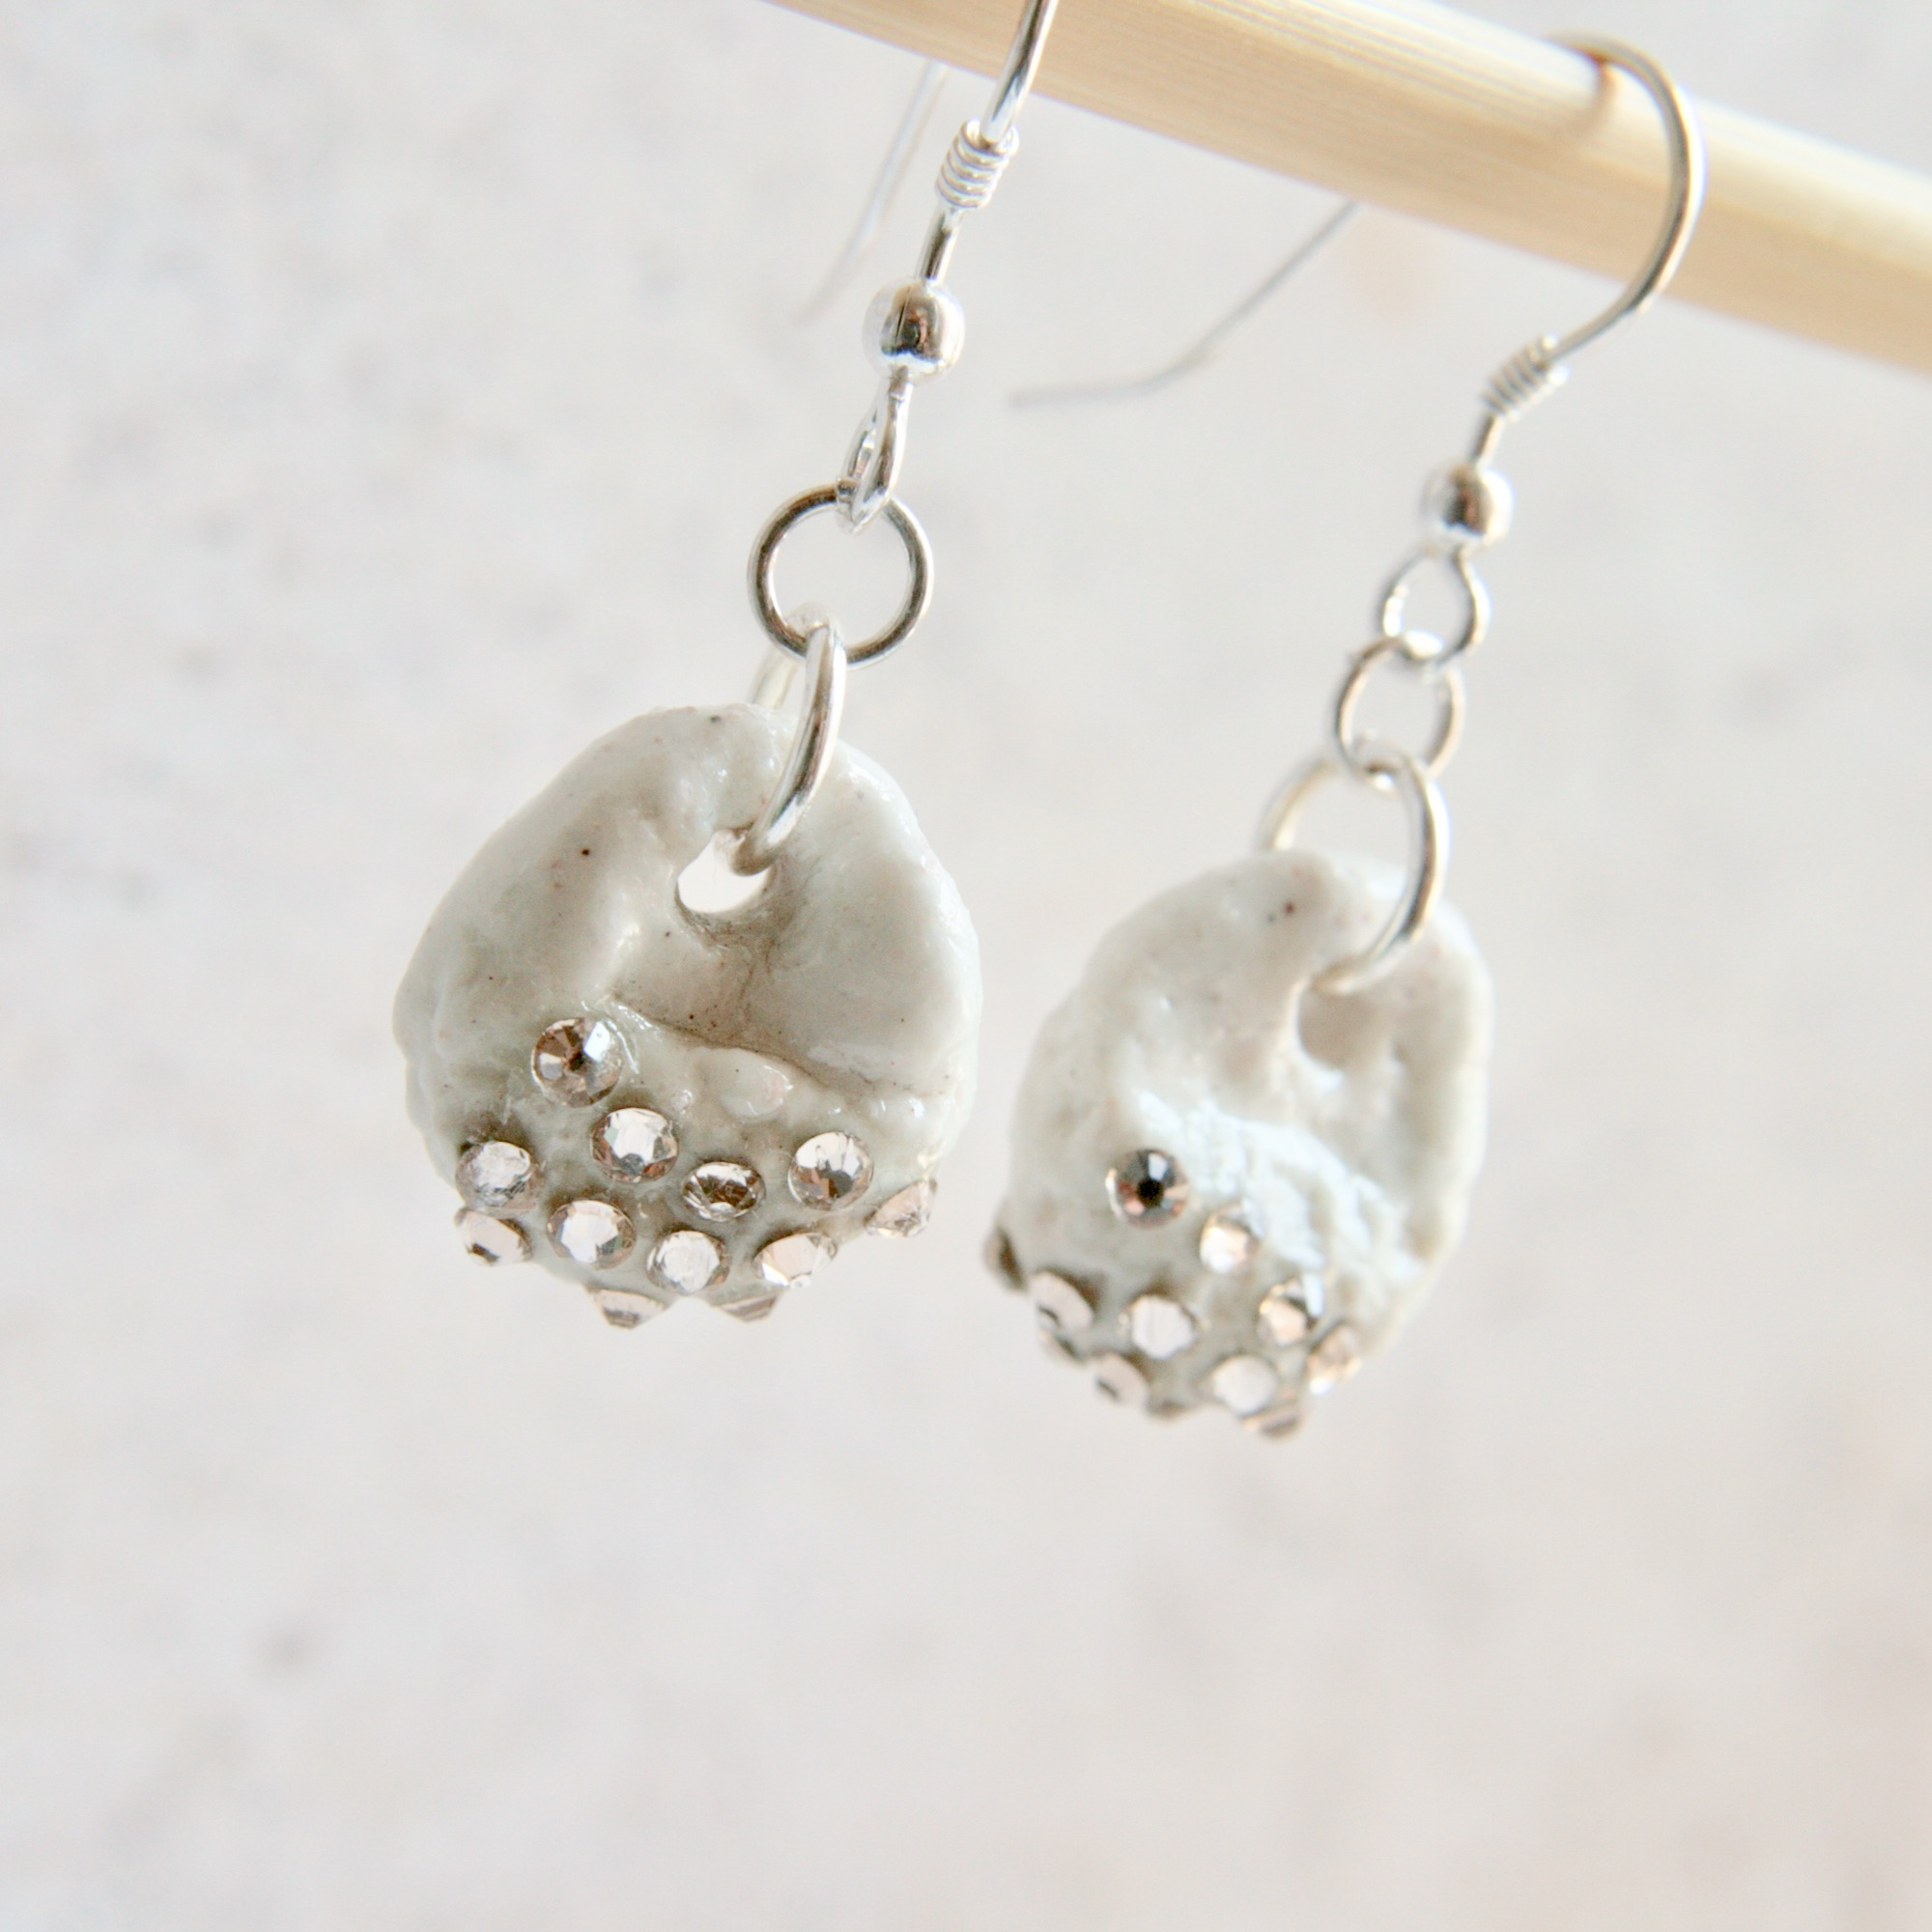 crystal-embellshed porcelain earrings with organic texture